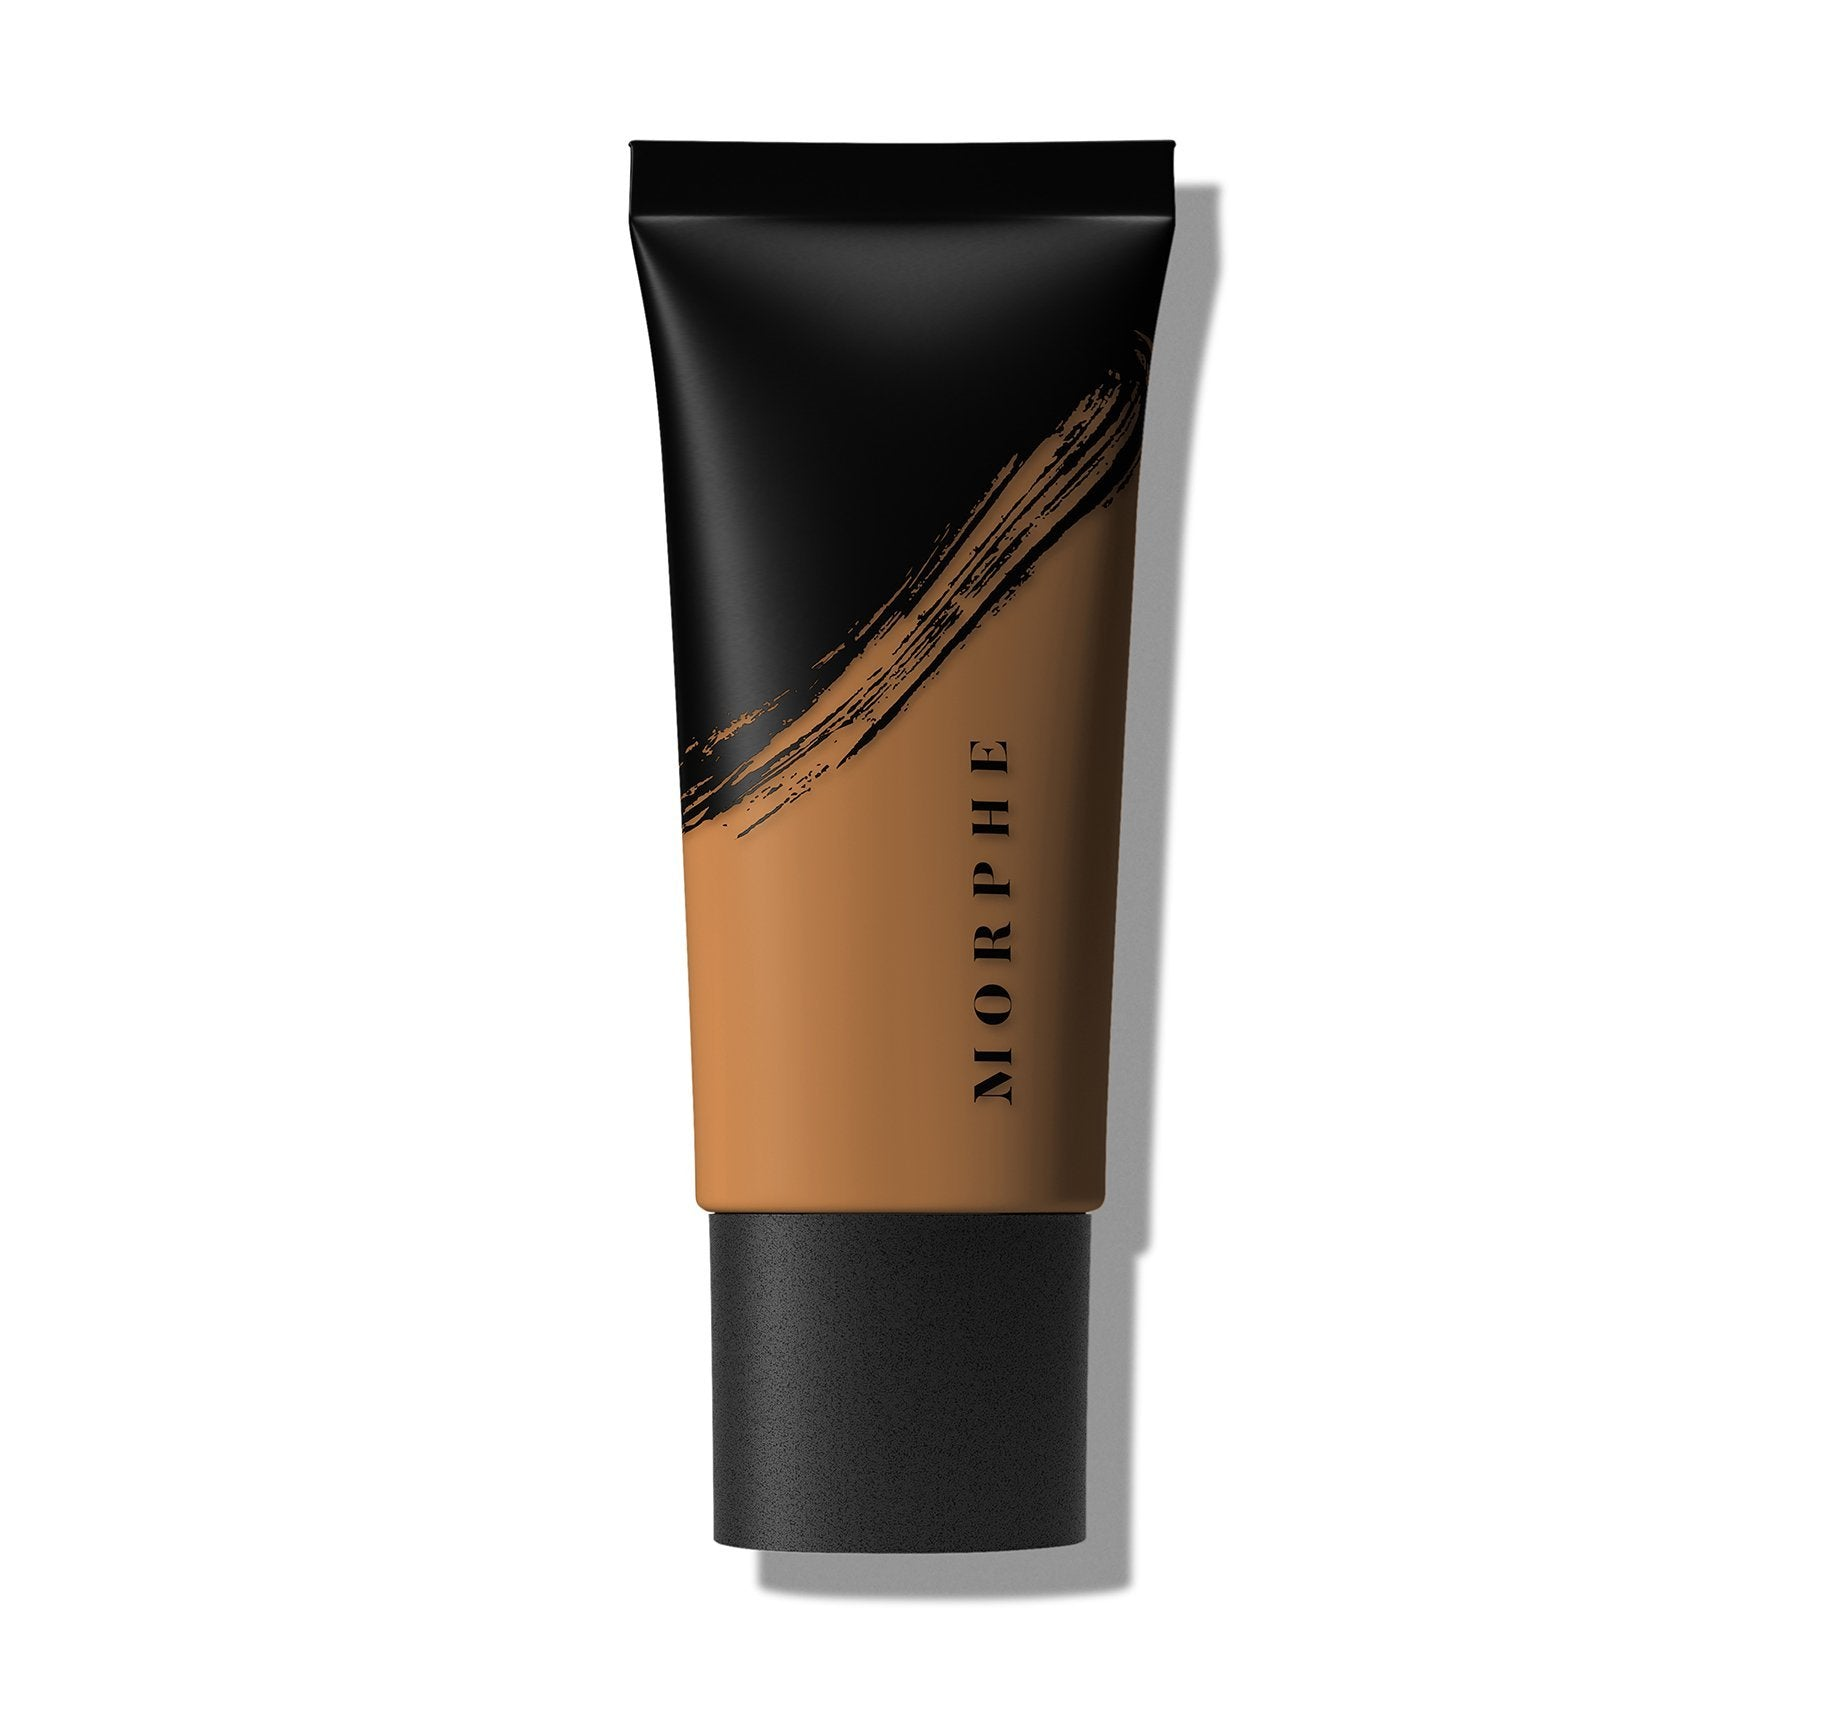 FLUIDITY FULL-COVERAGE FOUNDATION - F3.70, view larger image